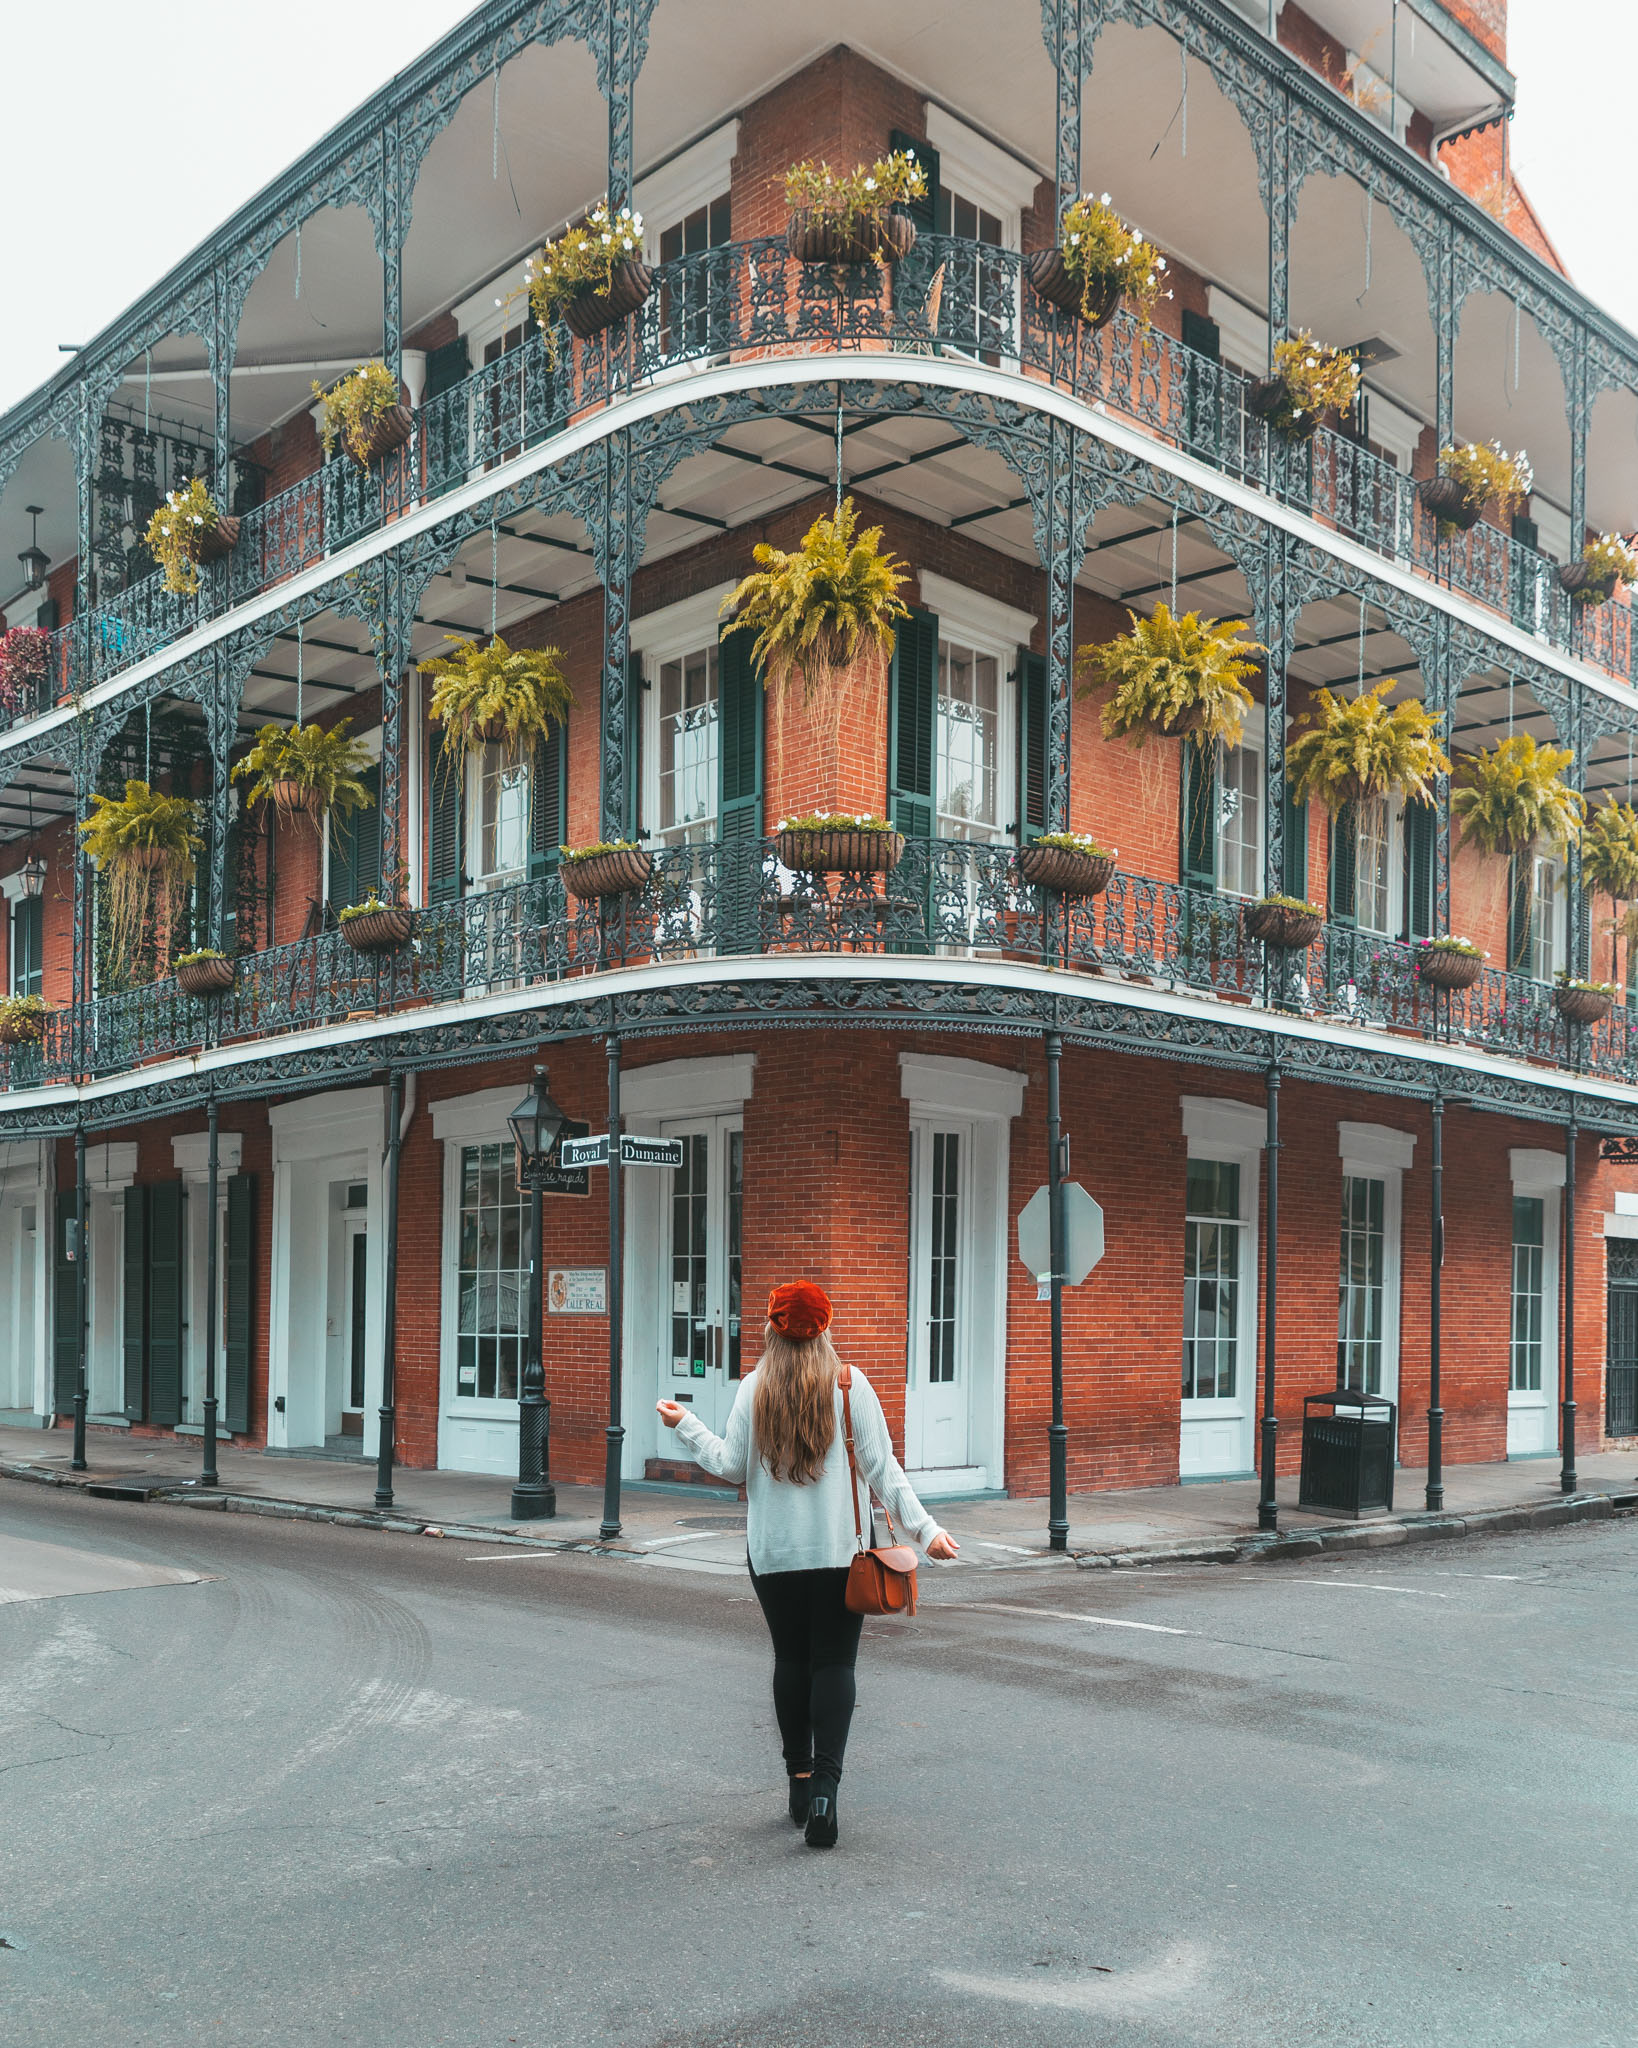 bourbon street hotels with balcony The Most Instagrammable Spots In New Orleans Ready Set Jet Set